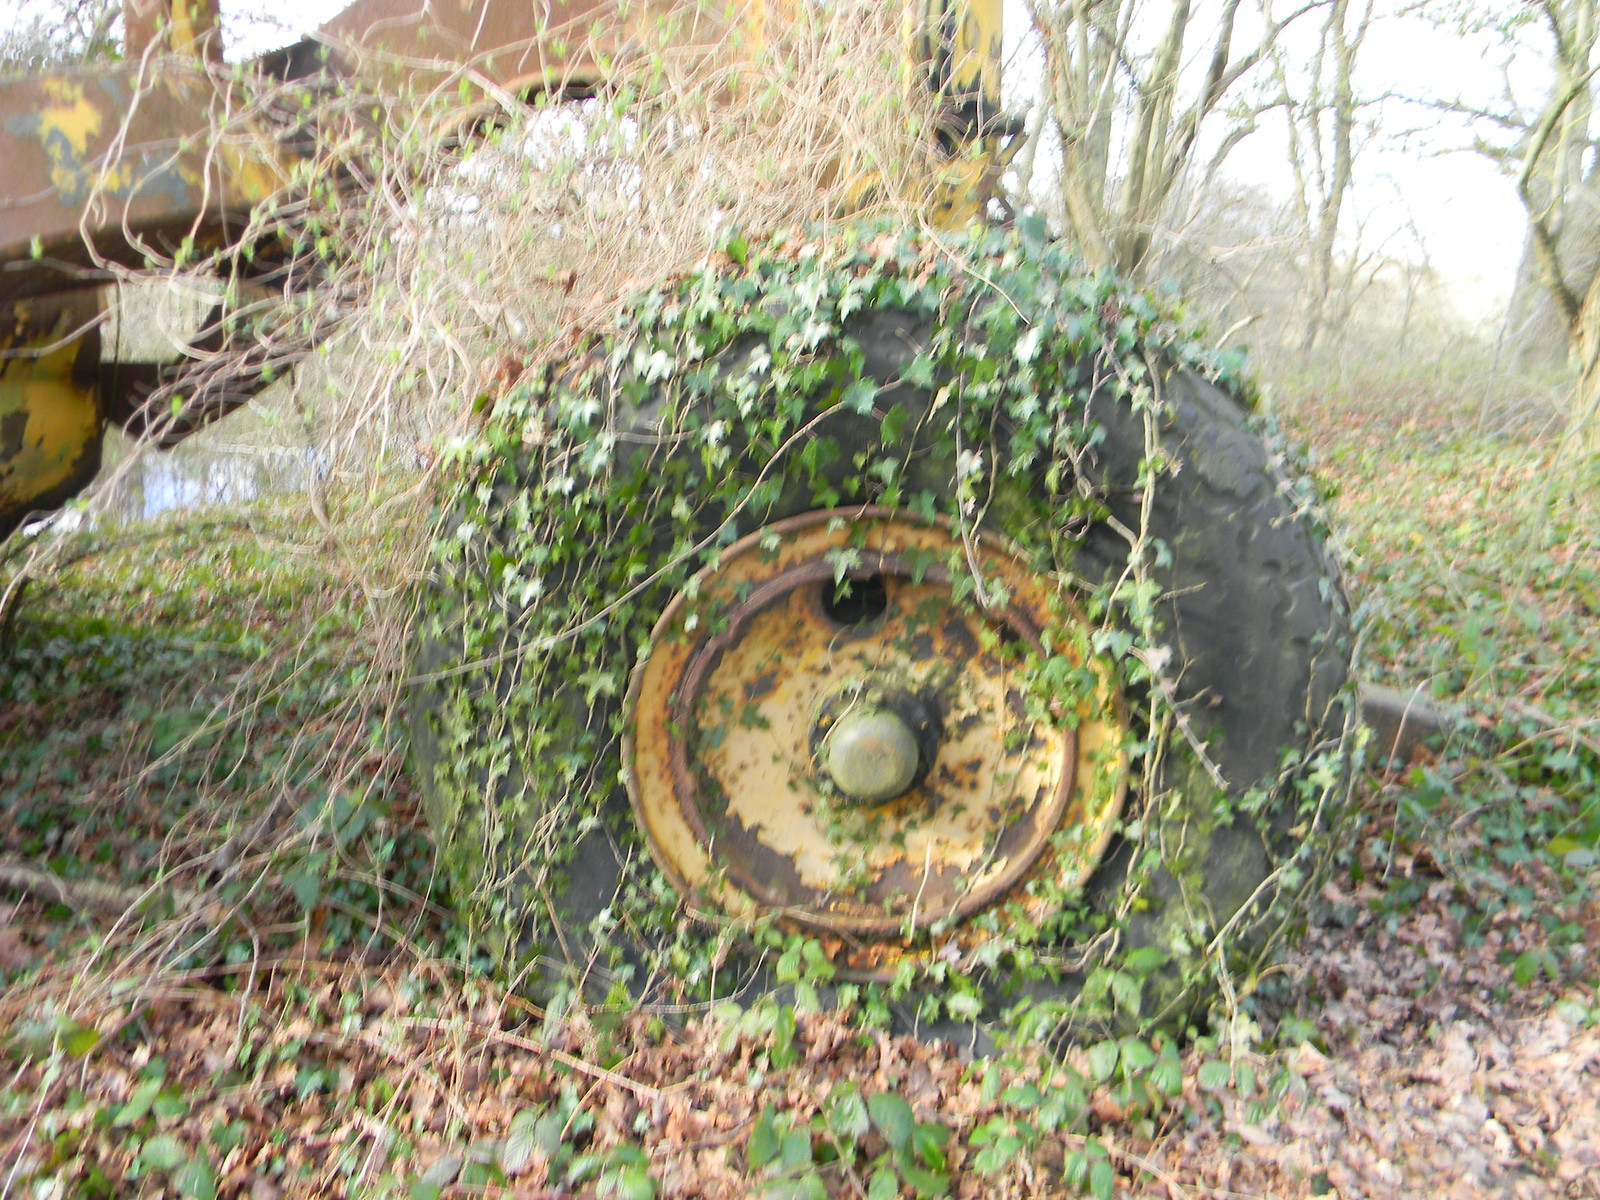 Ivy wheel This abandoned farm vehicle has been rusting away for years. Stonegate Circular